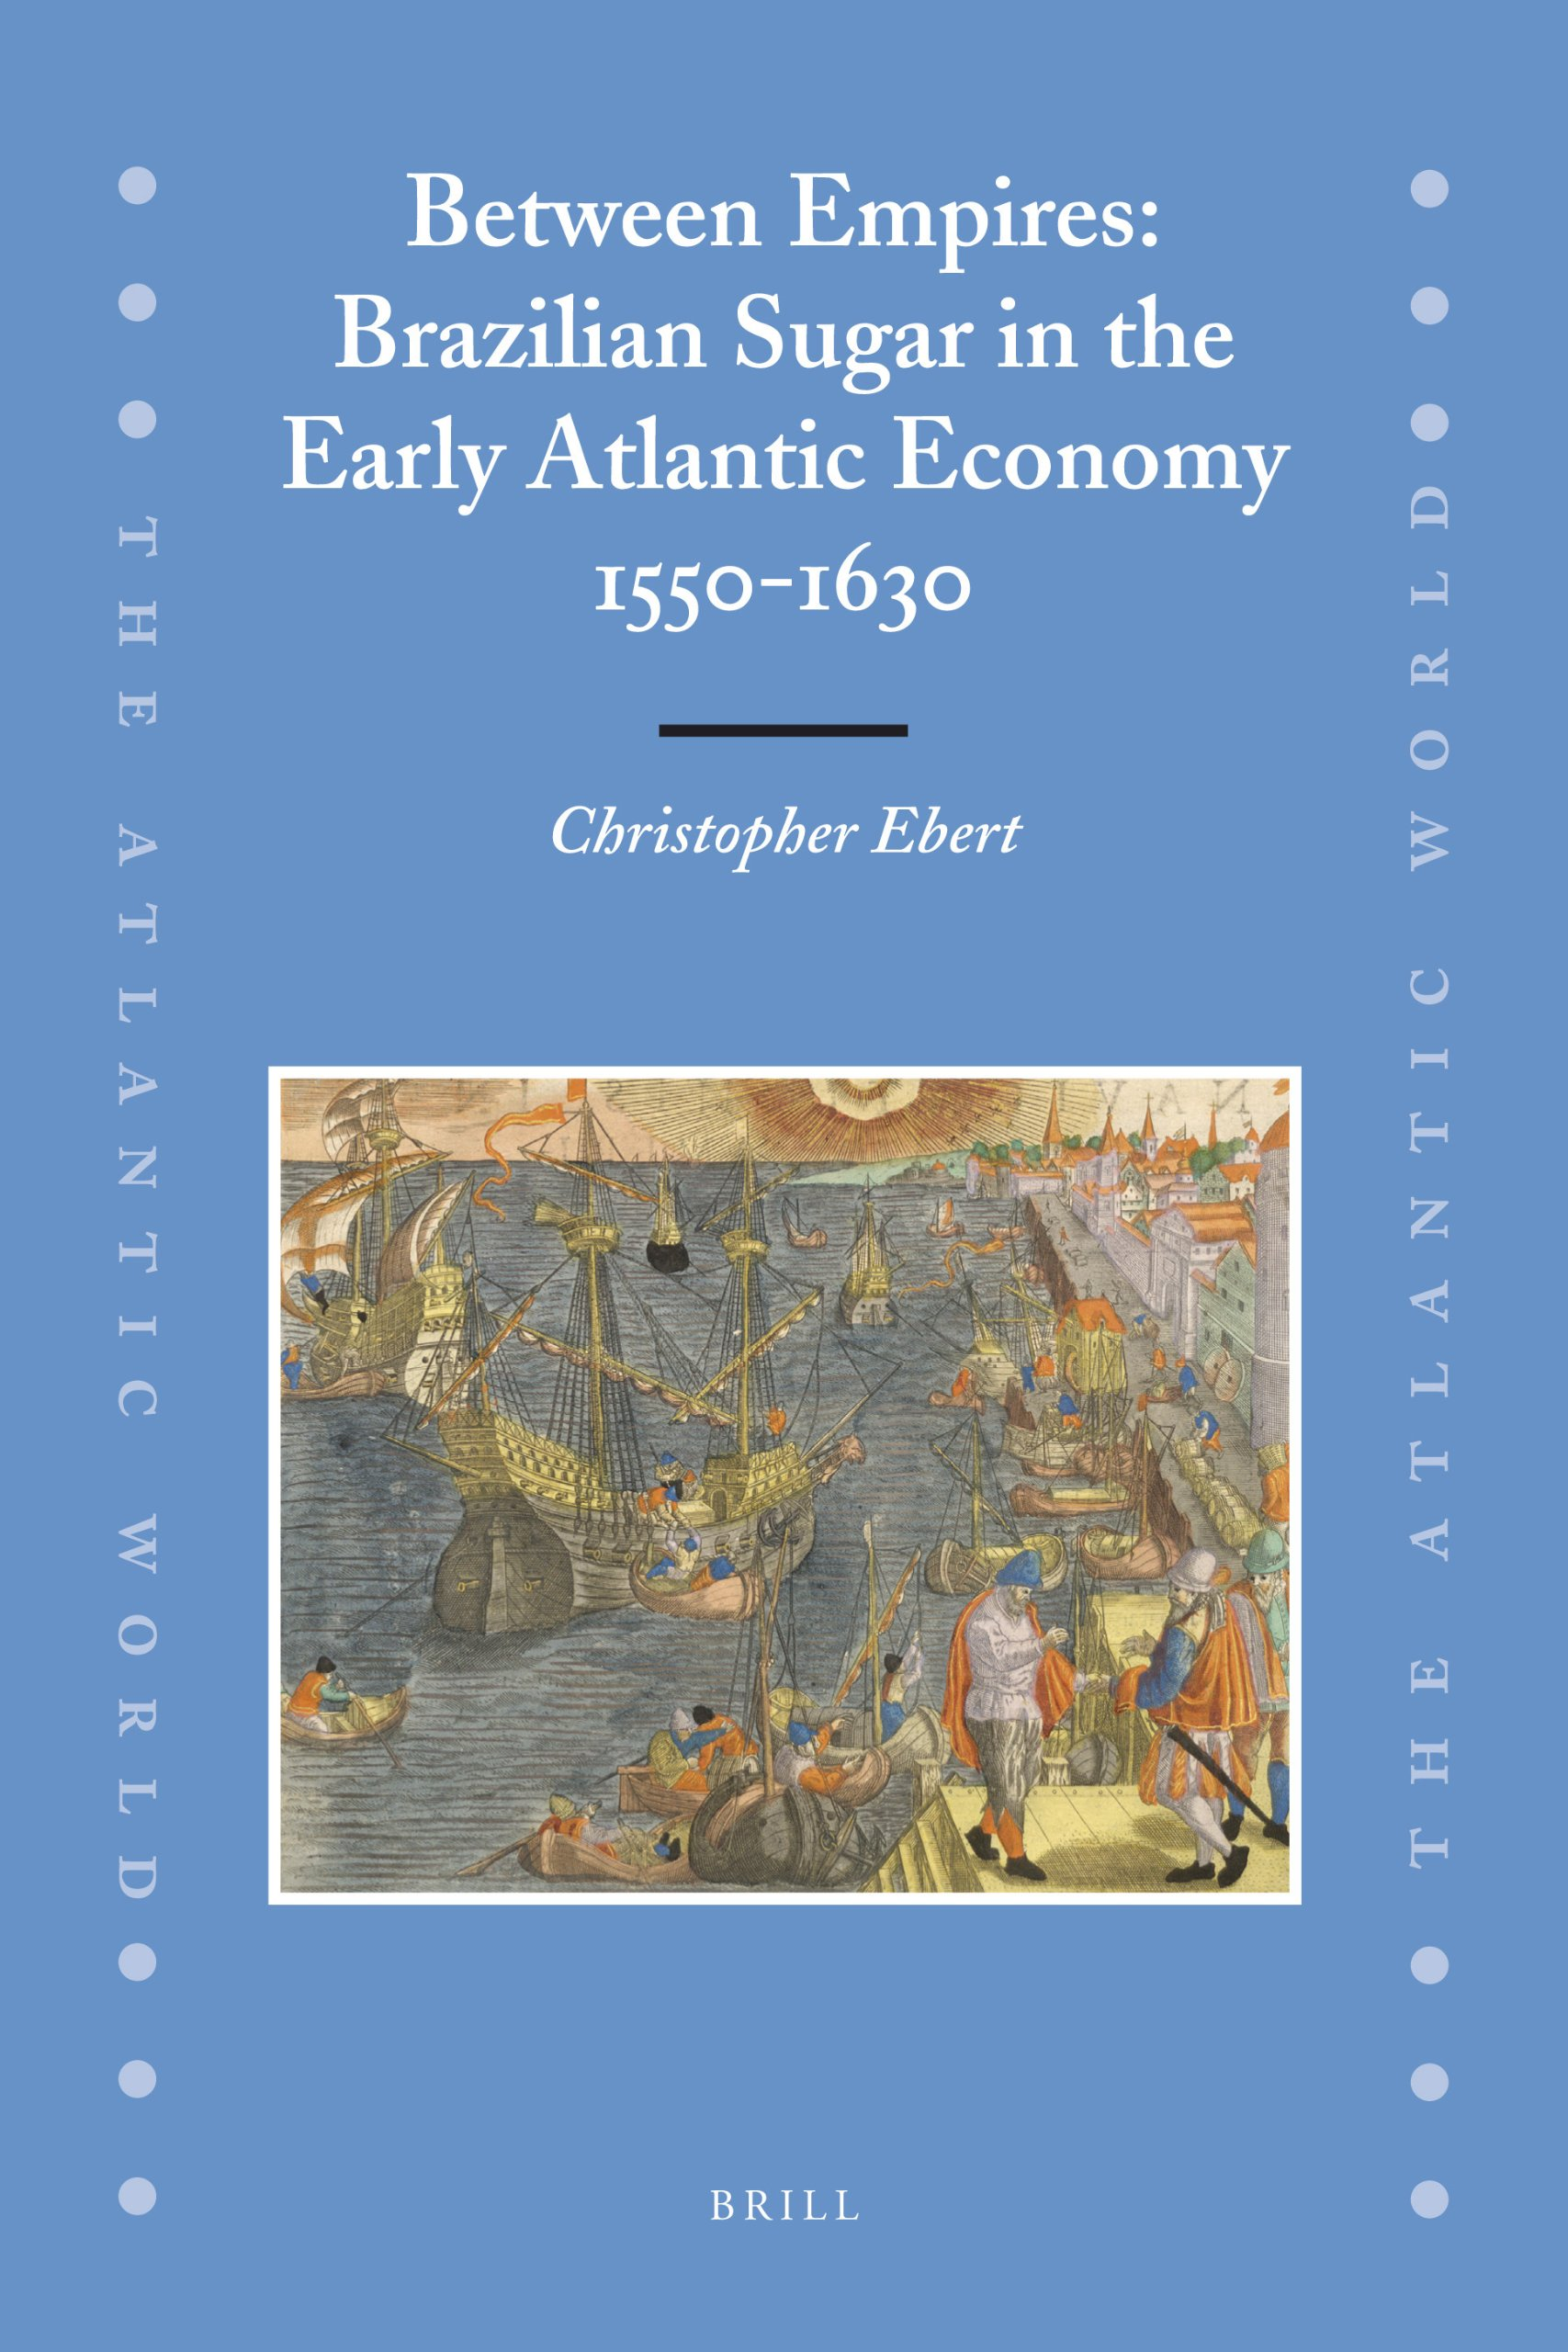 Between Empires: Brazilian Sugar in the Early Atlantic Economy, 1550-1630 (The Atlantic World) by Brill Academic Pub